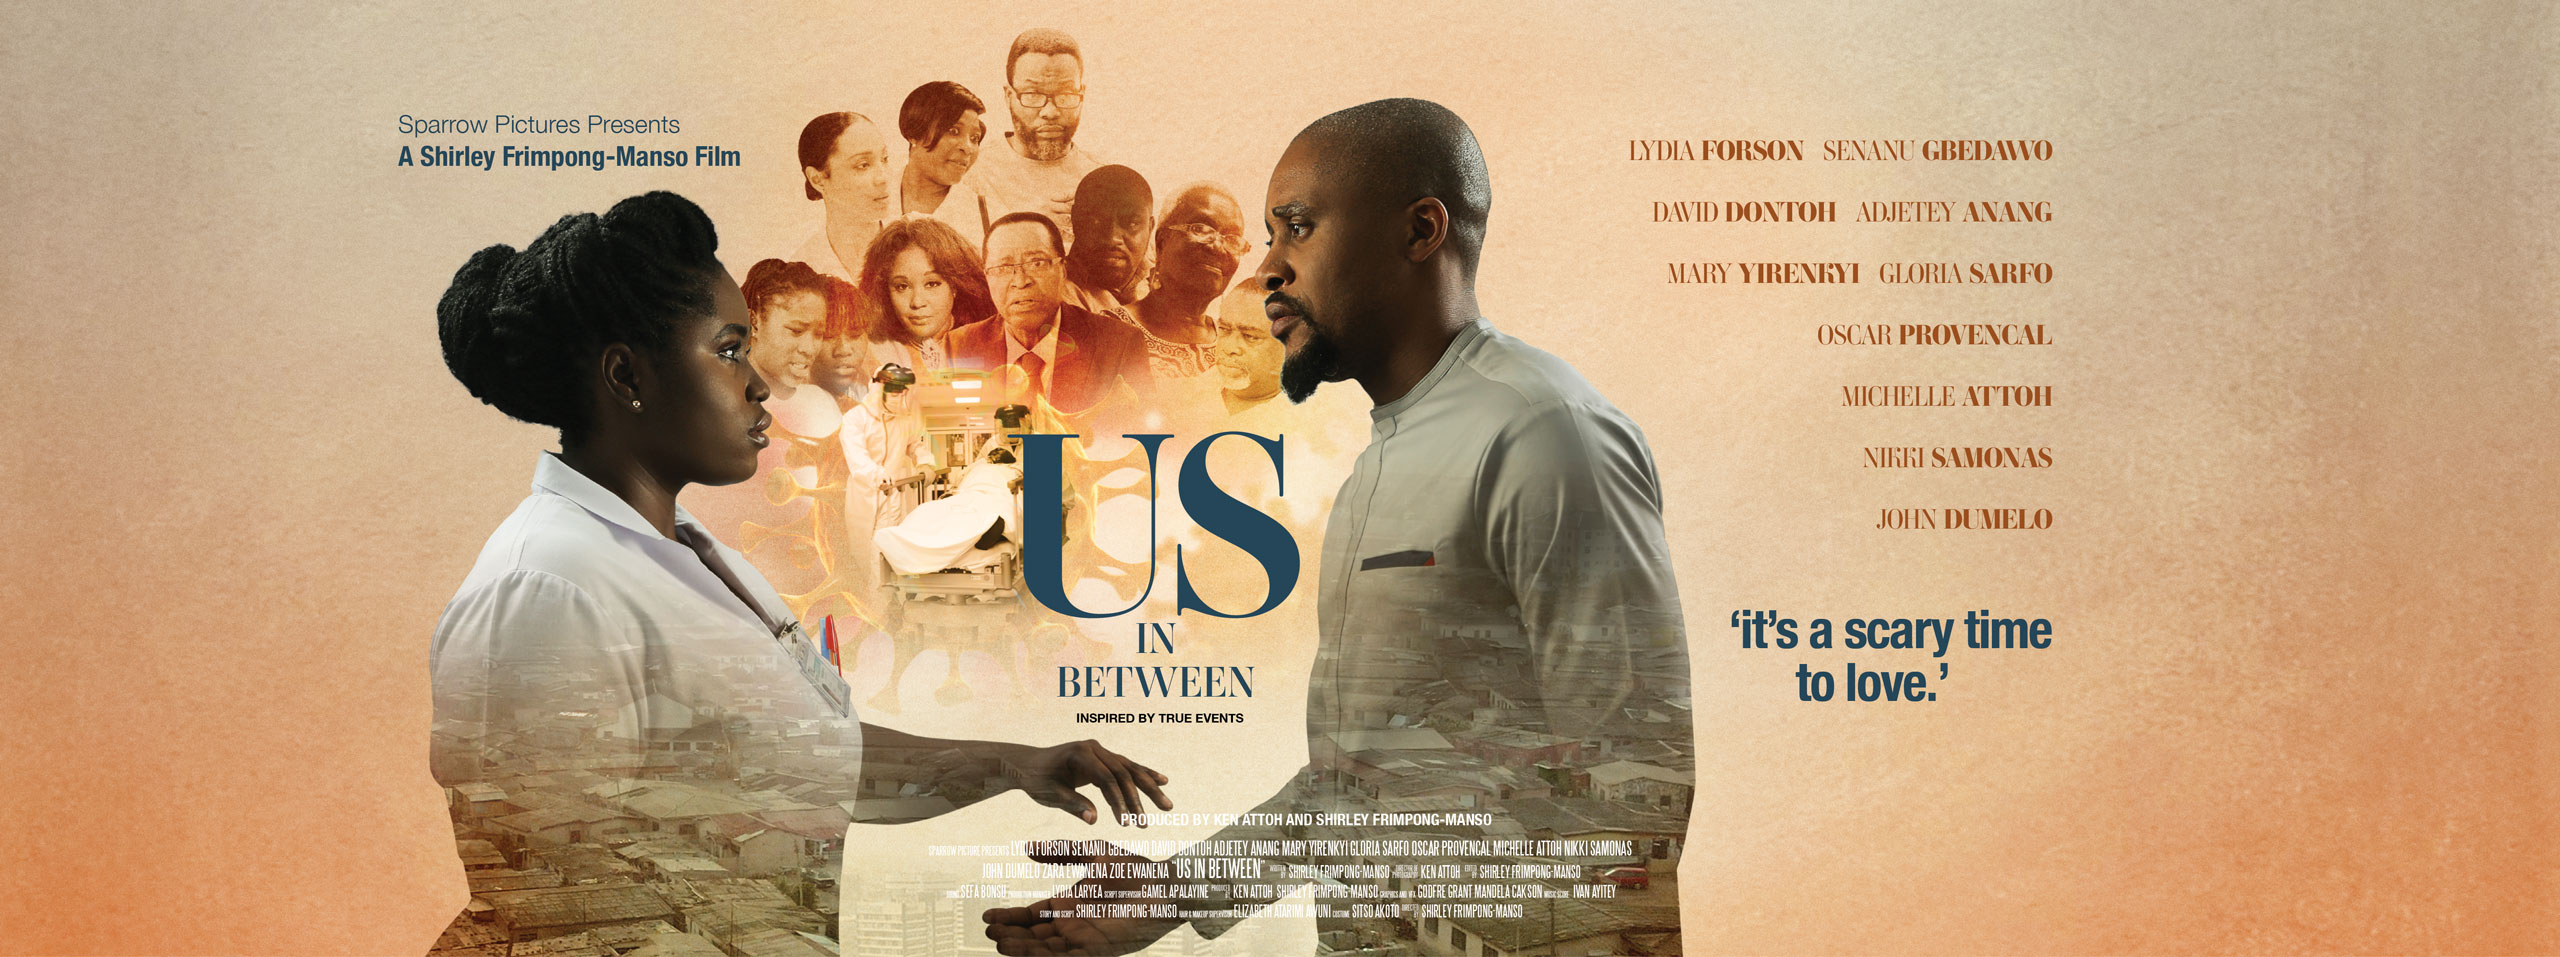 poster of a title that's coming soon: Us In Between